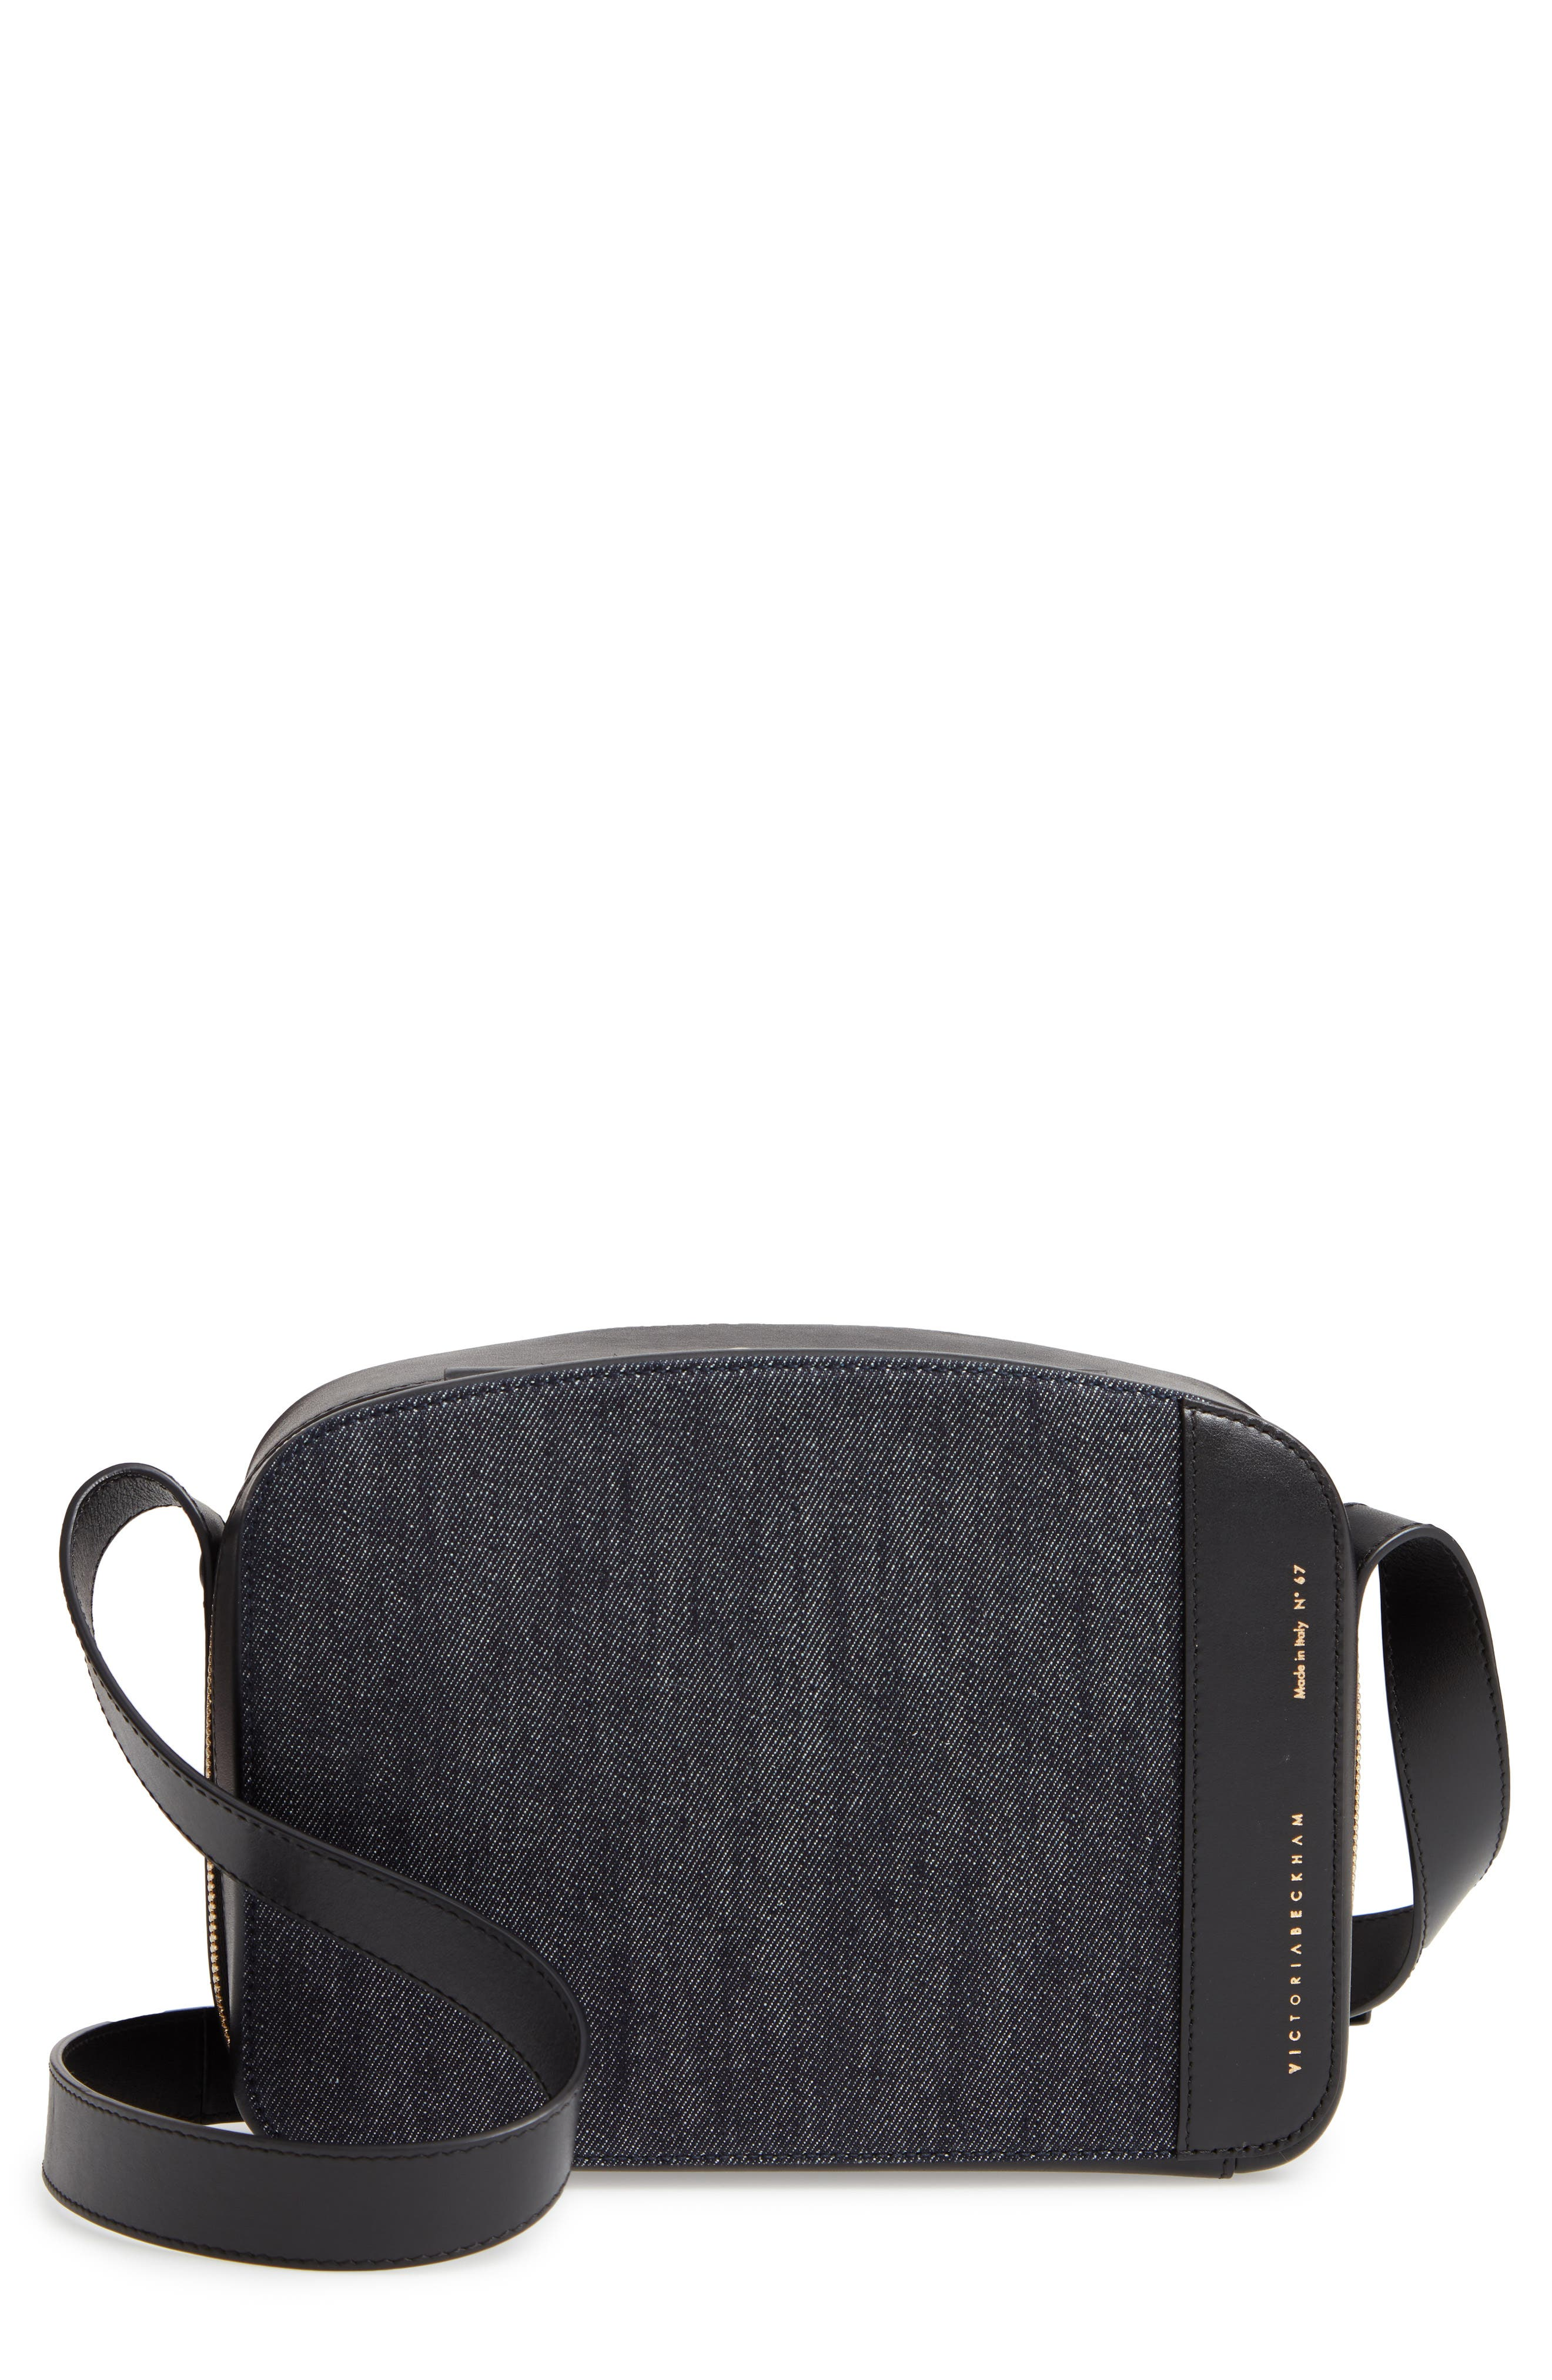 VICTORIA BECKHAM Vanity Denim & Leather Camera Bag, Main, color, INDIGO/ BLACK